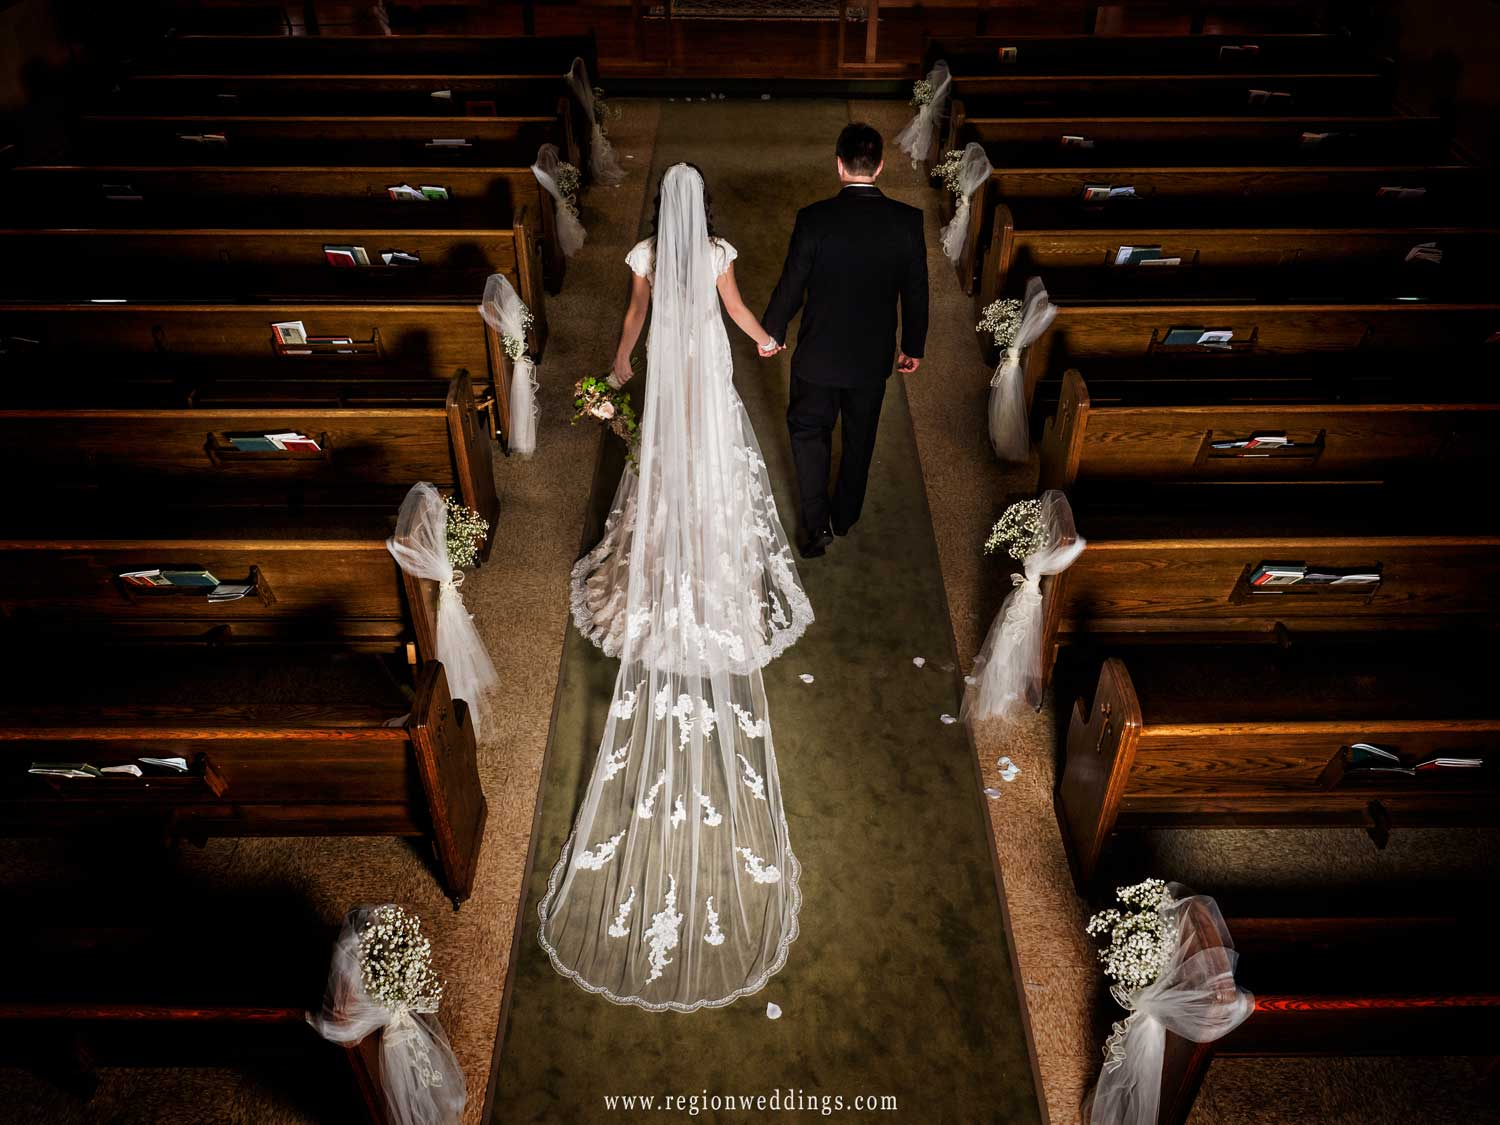 Catholic Wedding Ceremony.Catholic Wedding Ceremony At Immaculate Heart Of Mary Church